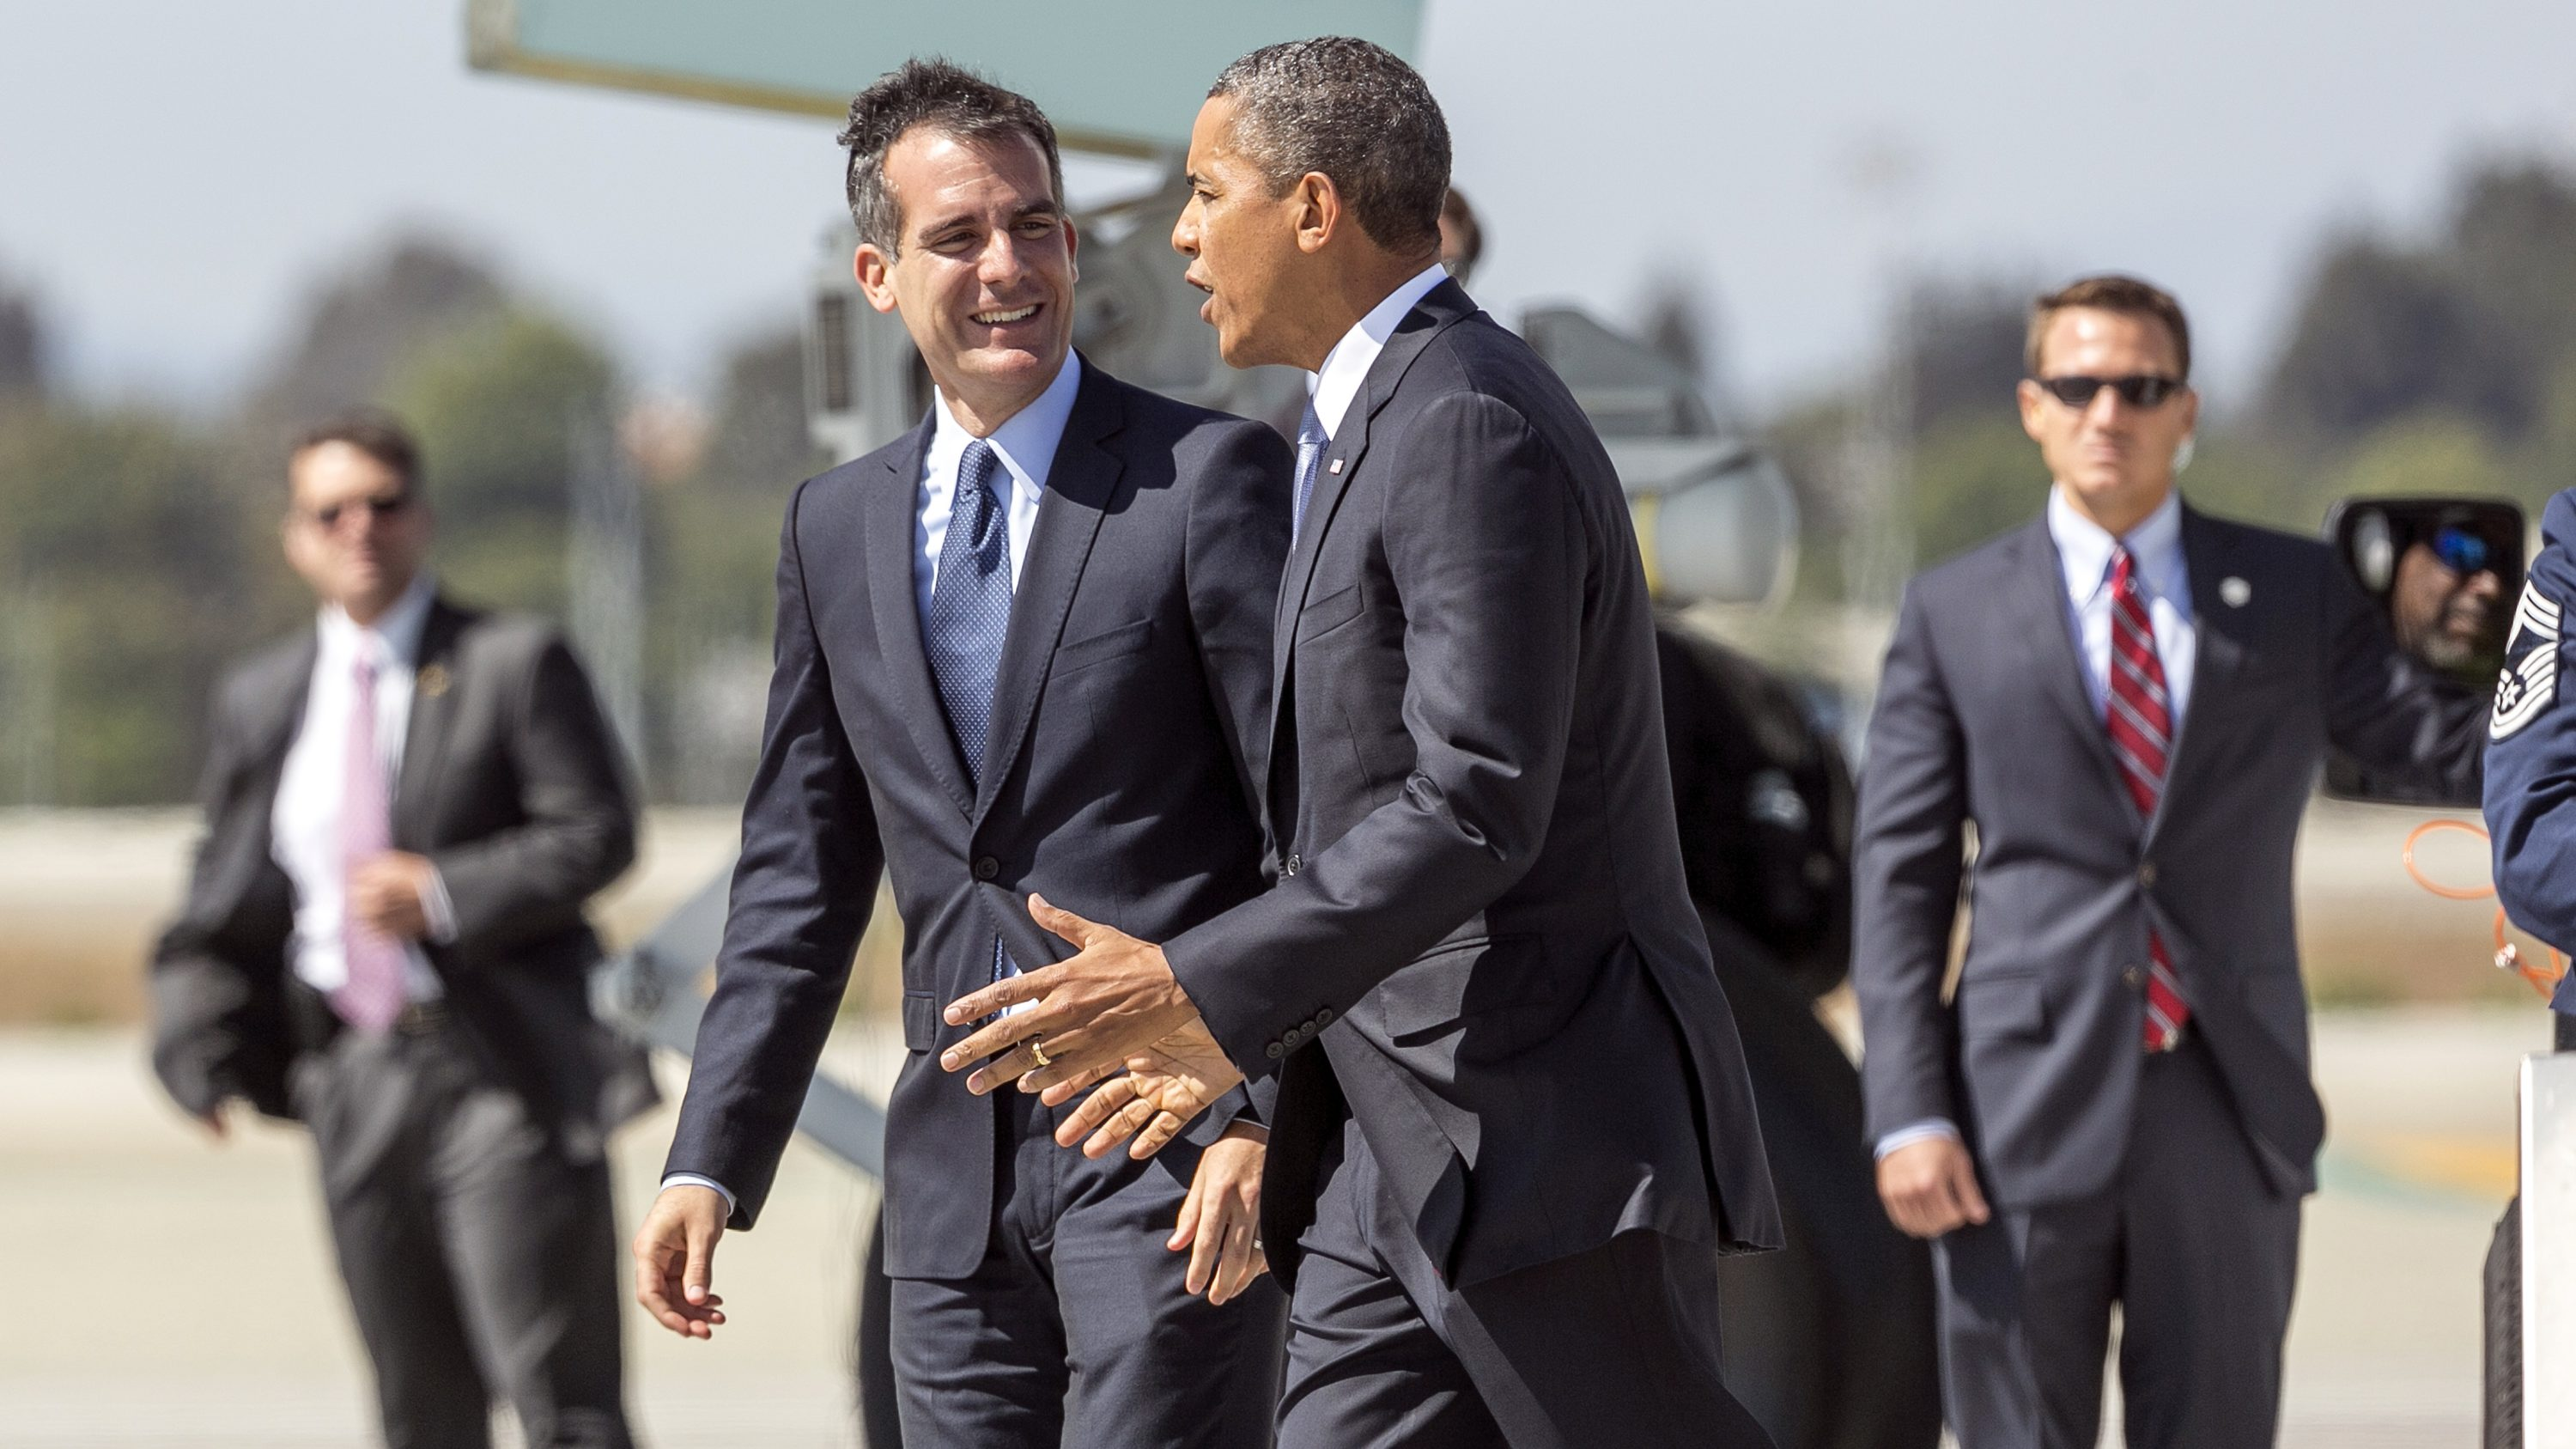 President Barack Obama is welcomed by Los Angeles Mayor Eric Garcetti, left, as he steps off of Air Force One at Los Angeles International Airport Tuesday, Aug. 6, 2013, in Los Angeles. (AP Photo/Damian Dovarganes)